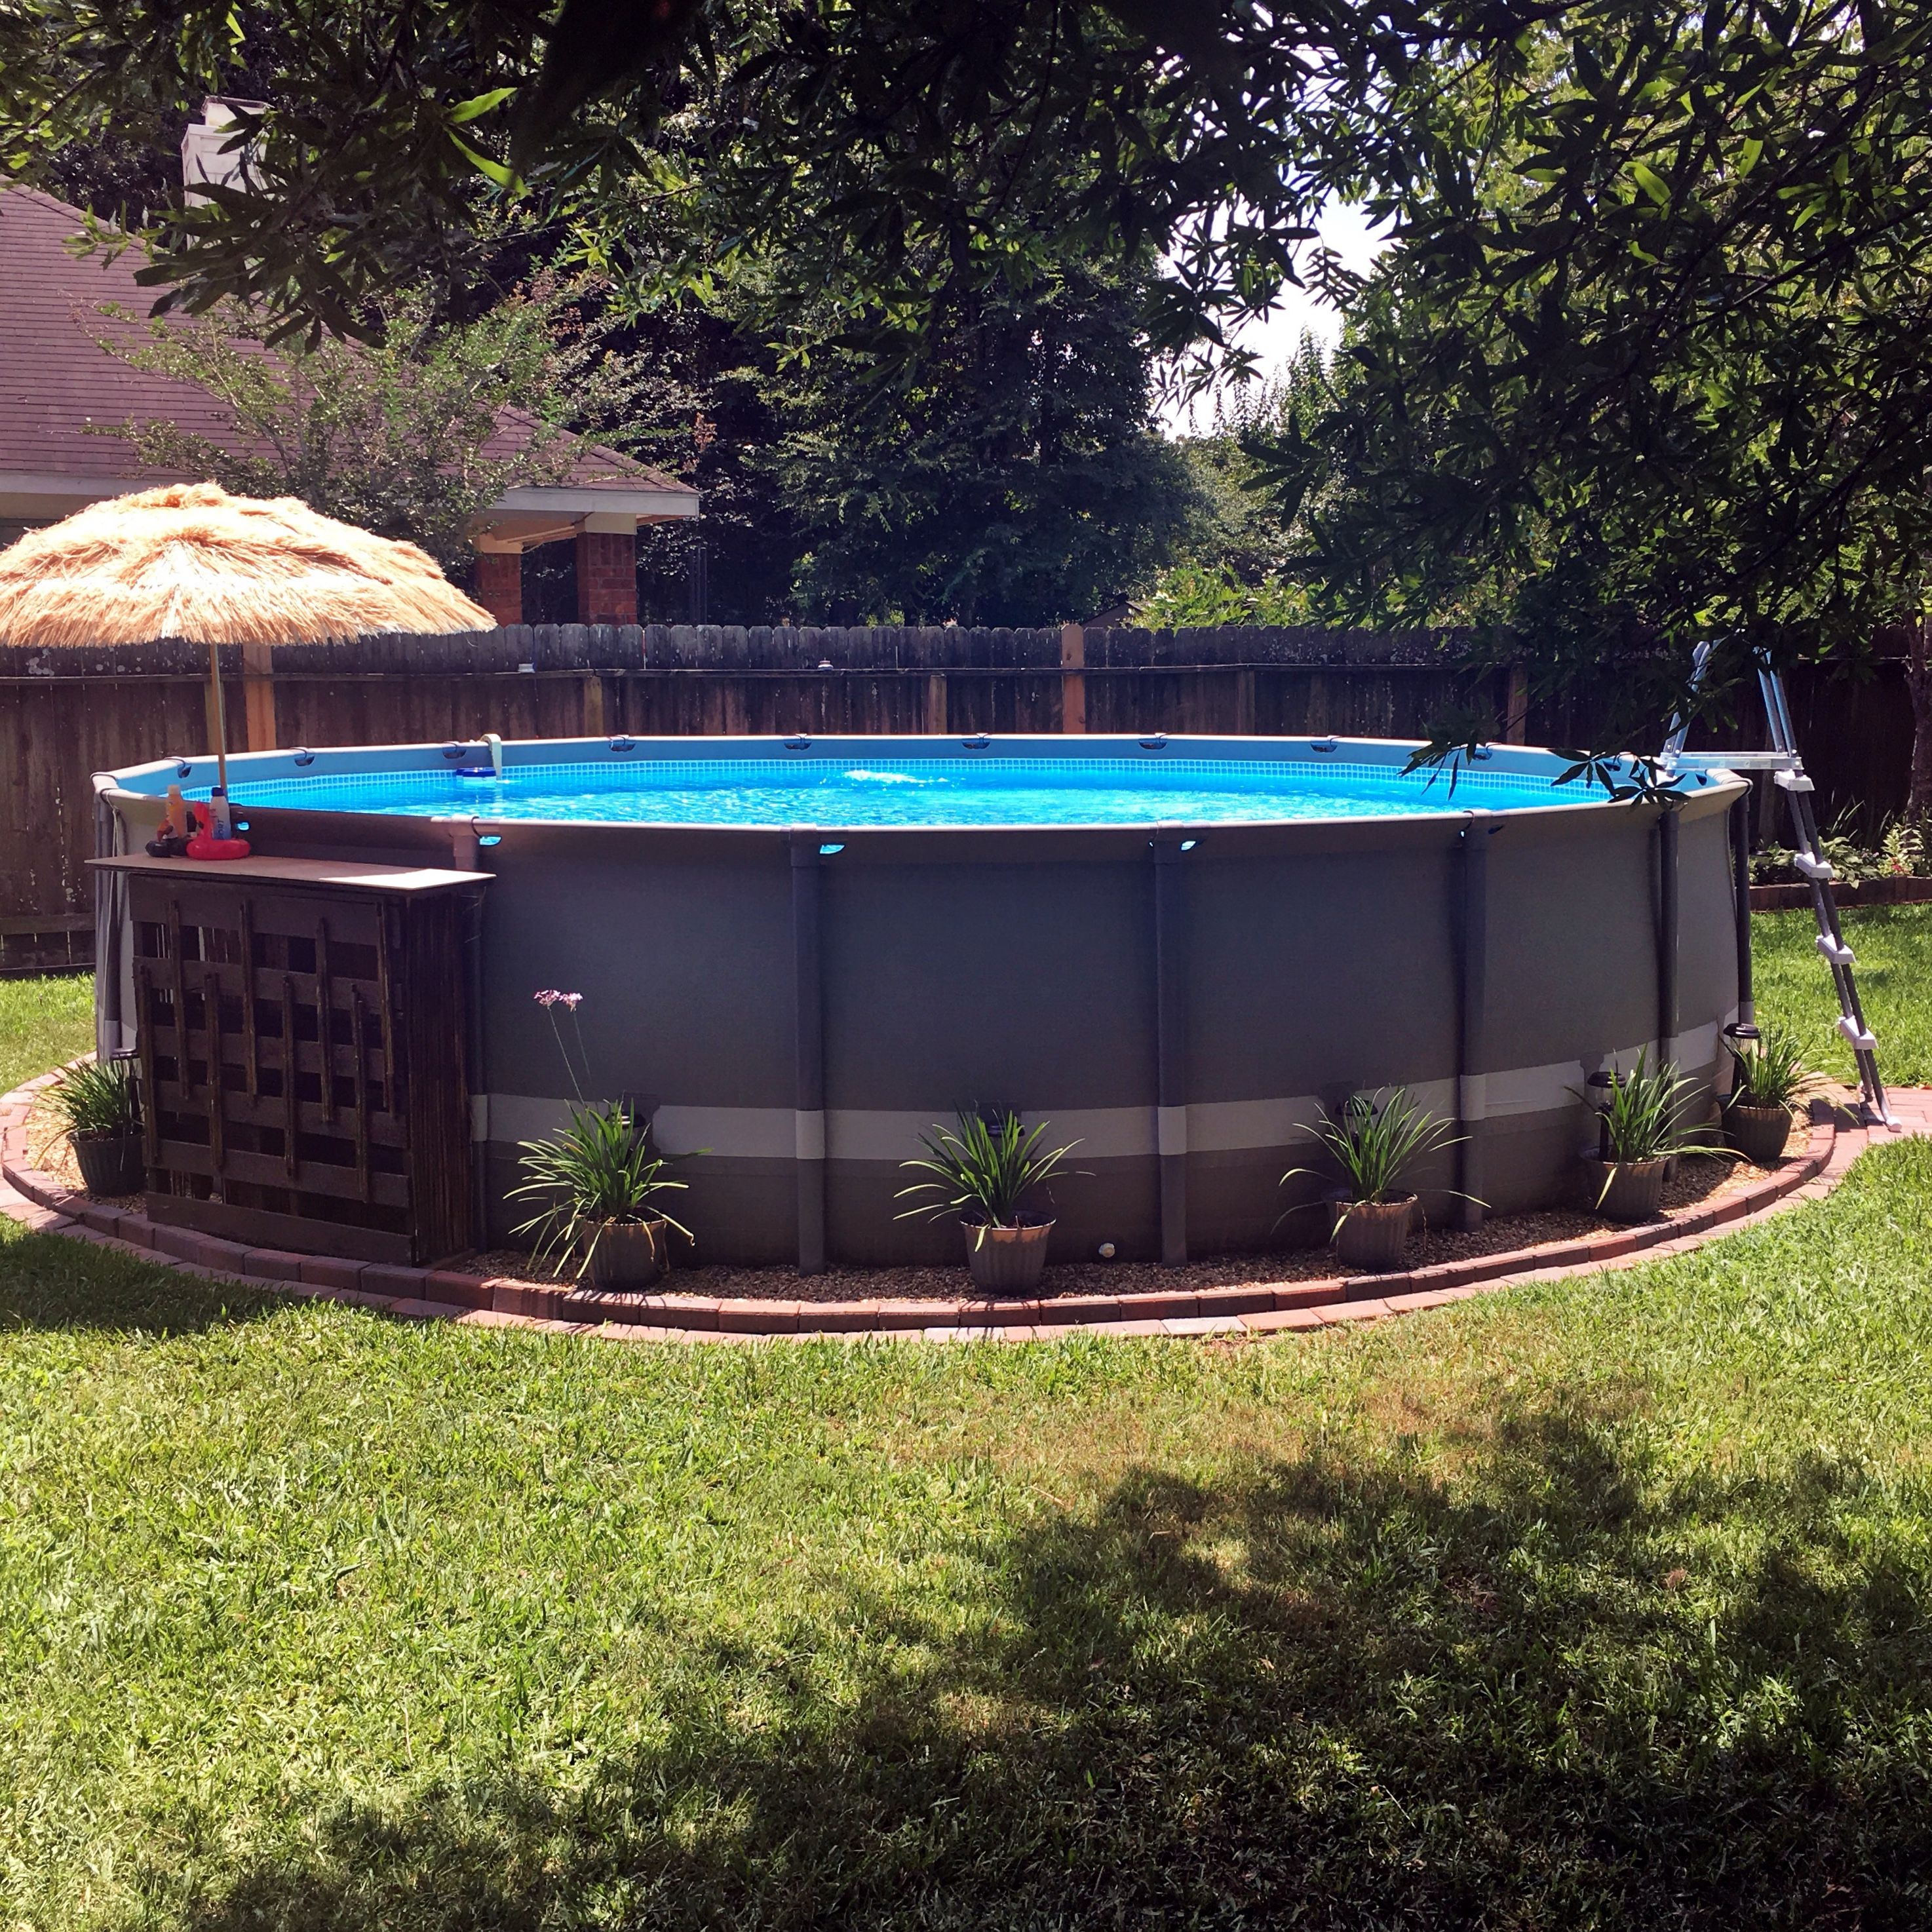 Our Intex Above Ground Pool With Brick Edging Pea Gravel Pots Of